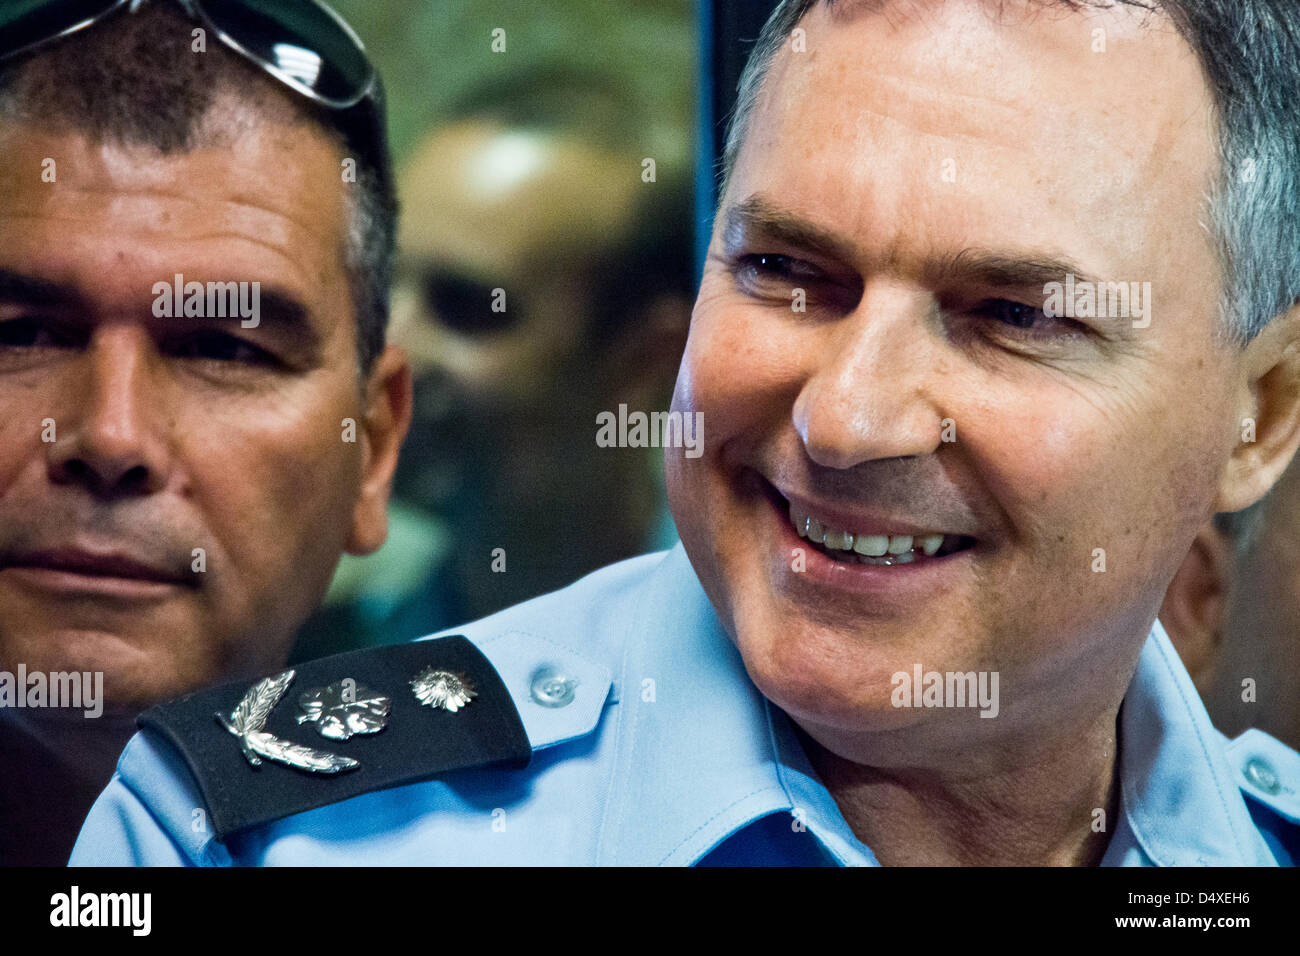 Israel Police Commissioner, Yohanan Danino, in an exchange of laughs with police officers manning the Jerusalem - Stock Image